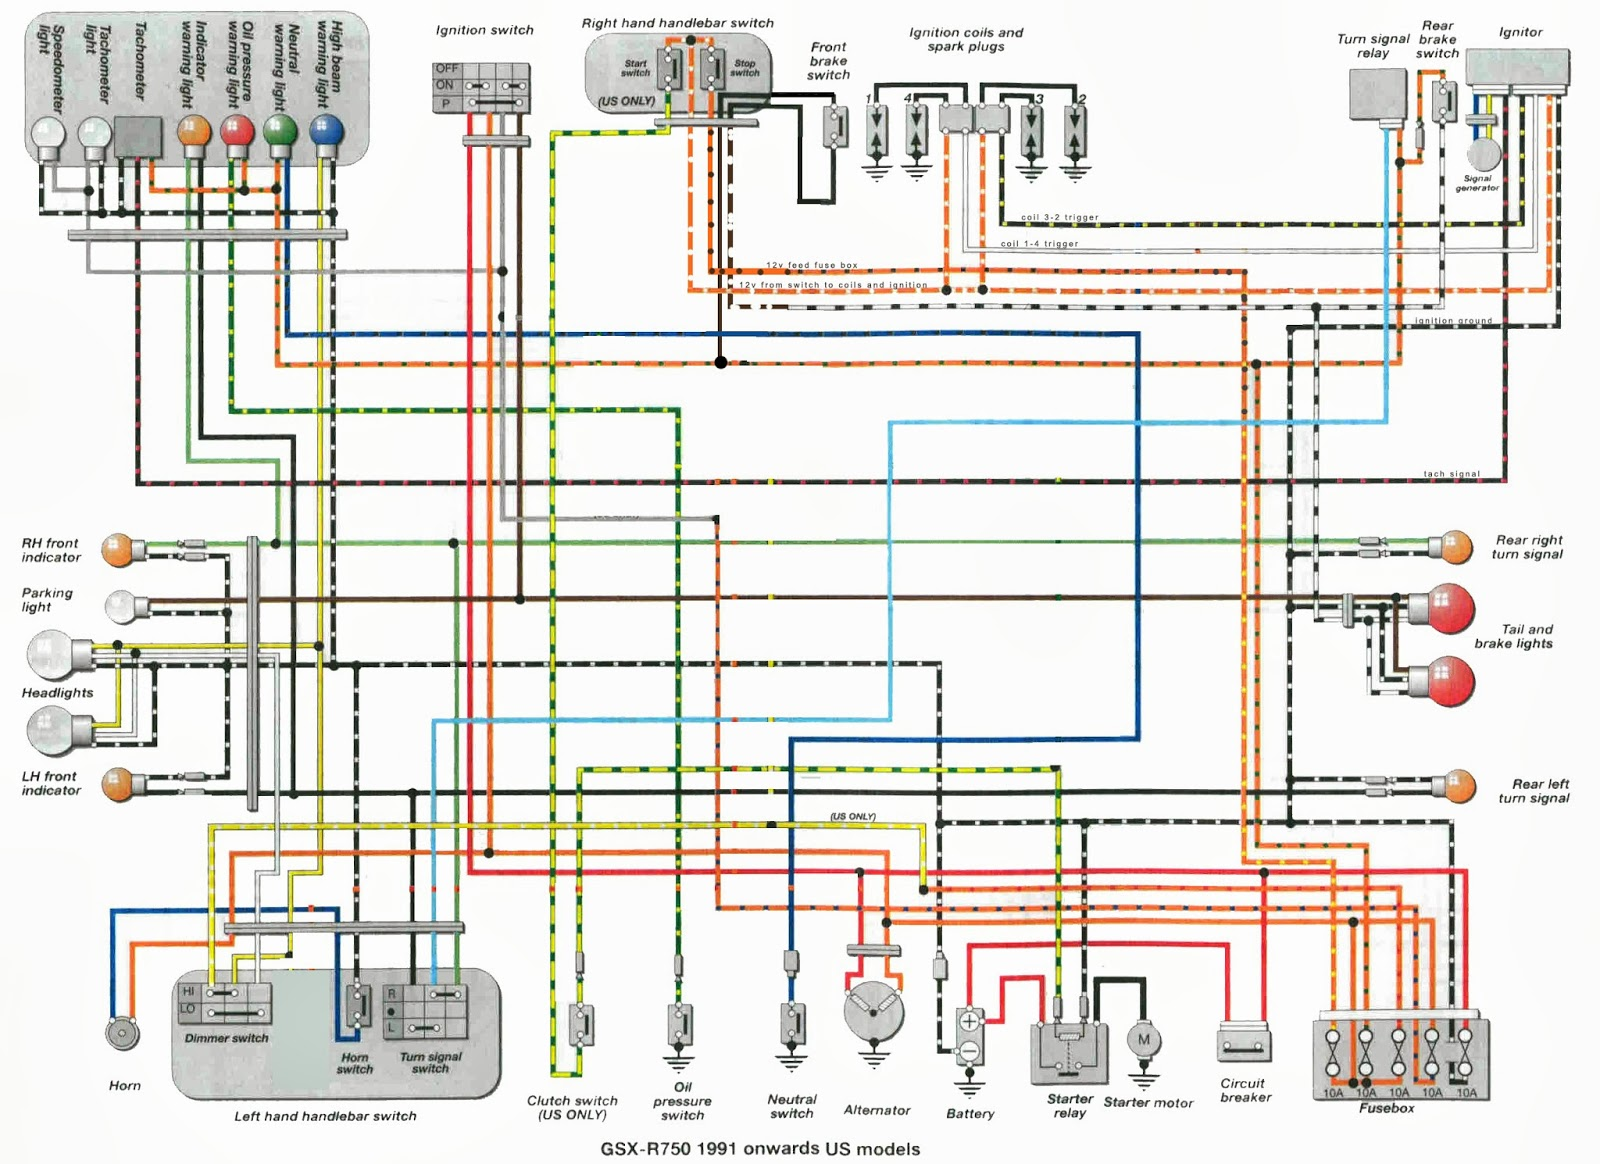 2004 gsxr 750 wiring diagram bQFMiSD wiring diagram for 359 peterbilt yhgfdmuor net 359 peterbilt wiring diagram at edmiracle.co